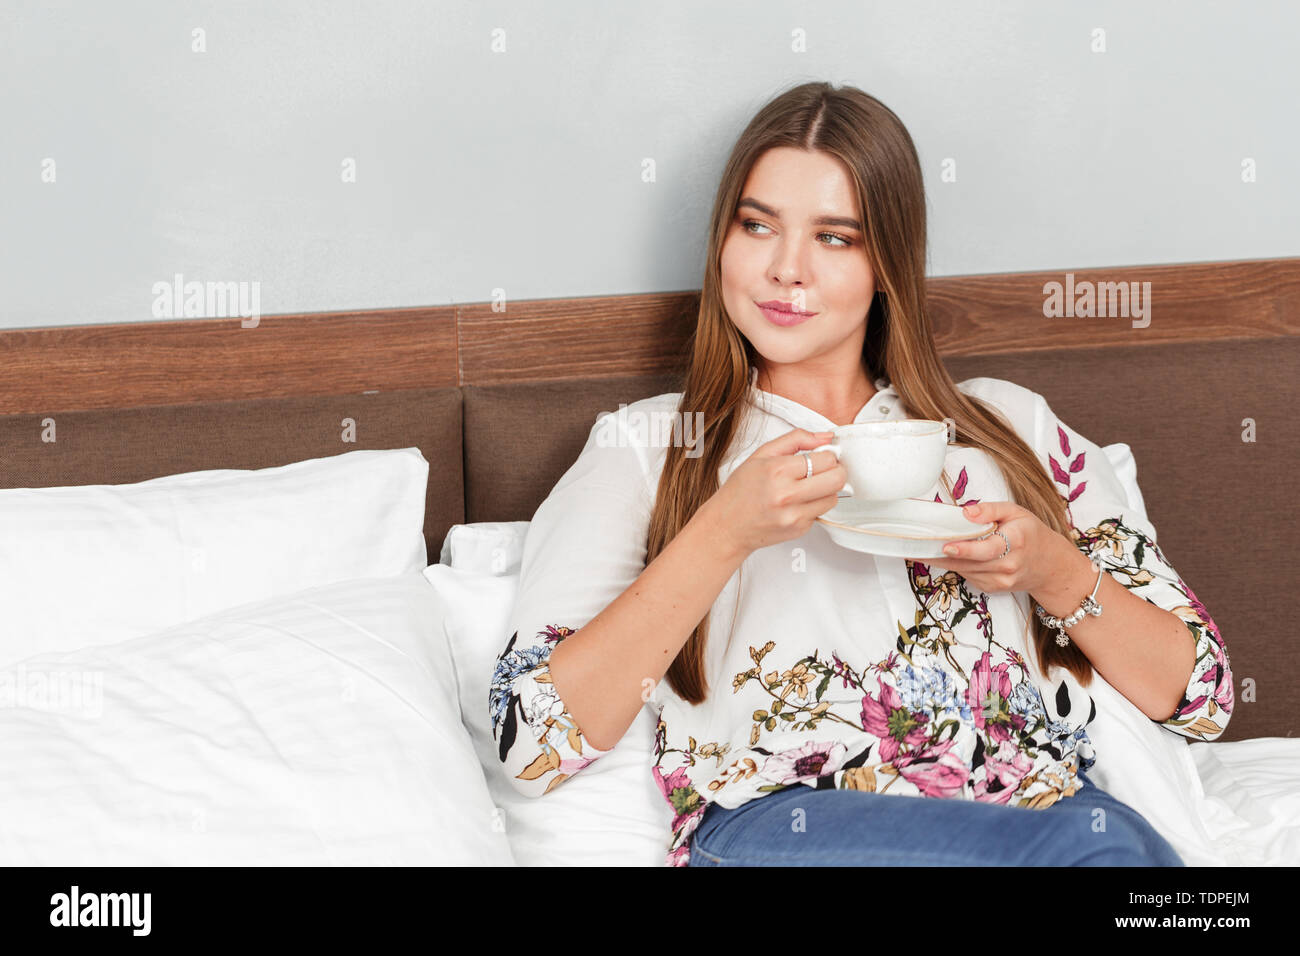 Morning coffee or tea in bed - Stock Image